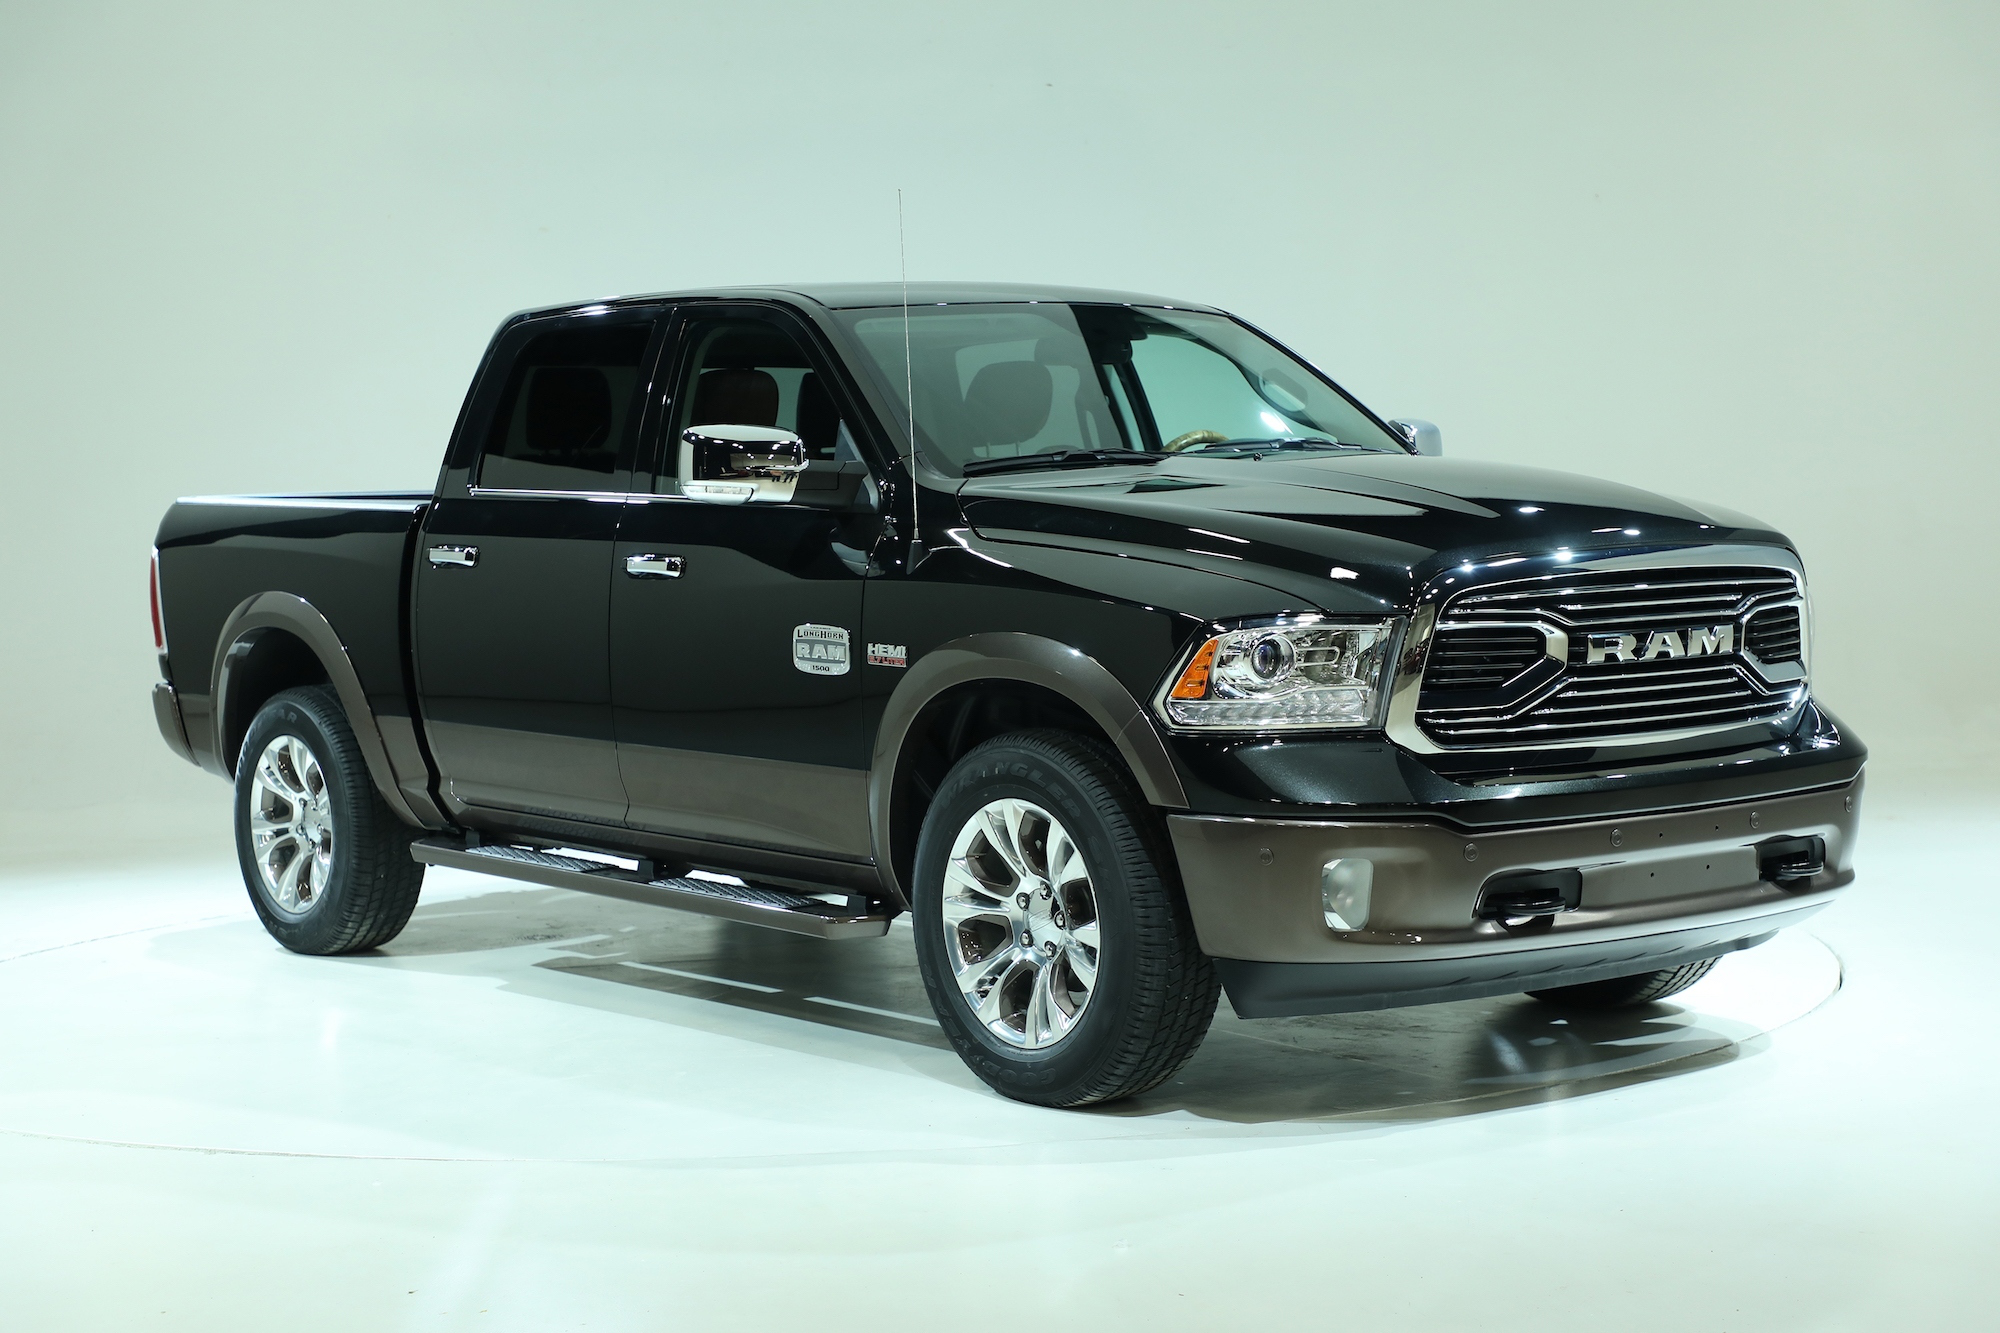 Ram unveils 1500 Copper Sport limited edition, new 2-tone ...